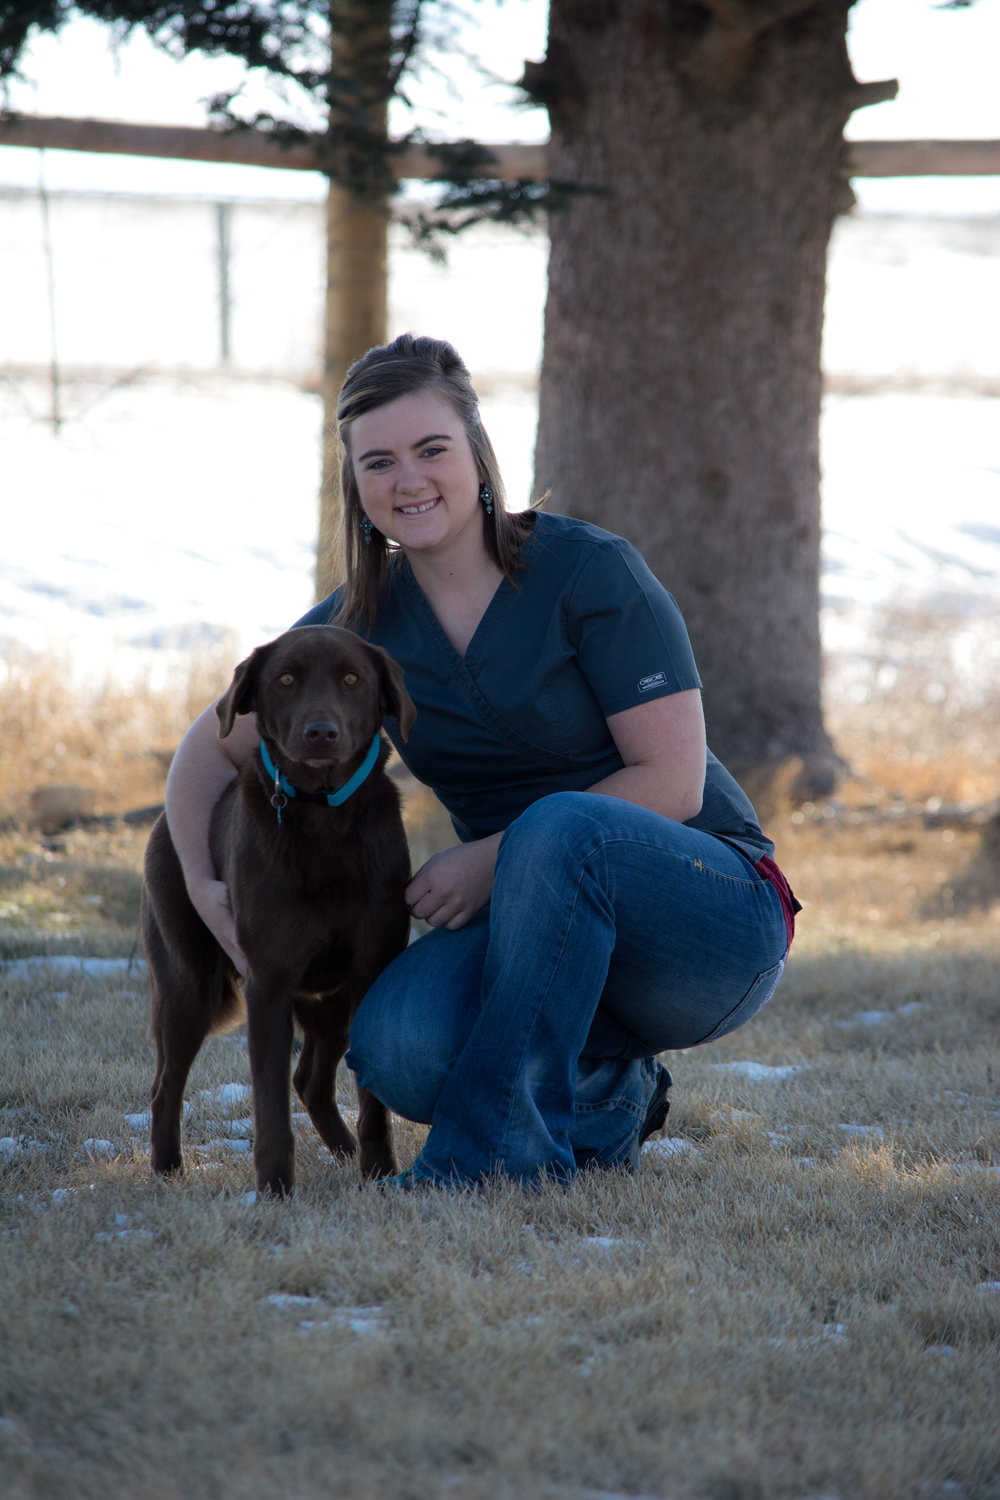 Lauretta Kolbeck, CVA - Lauretta has been with the Clark Fork Veterinary Clinic since 2013. She is the Office Manager, as well as one of the Certified Veterinary Assistants. She grew up in Dillon Montana on and around her grandparents' ranch. She graduated from Montana State University in Bozeman with a degree in Agricultural Education. She loves being involved in veterinary medicine and using her teaching background to help educate clients about the animals and their medical needs. Lauretta's passion is in beef cattle production and herd health planning. She enjoys riding horses and working for several of the local ranches on the weekends with her husband, Travis, and daughter, Kyla. She and her family enjoy hunting, fishing and camping with their two dogs, Cedar and Sage. Lauretta is a member of the Veterinary Hospital Managers Association and plans to continue her education in business management and veterinary medicine. Her goals include becoming a Certified Veterinary Practice Manager and Licensed Veterinary Technician.